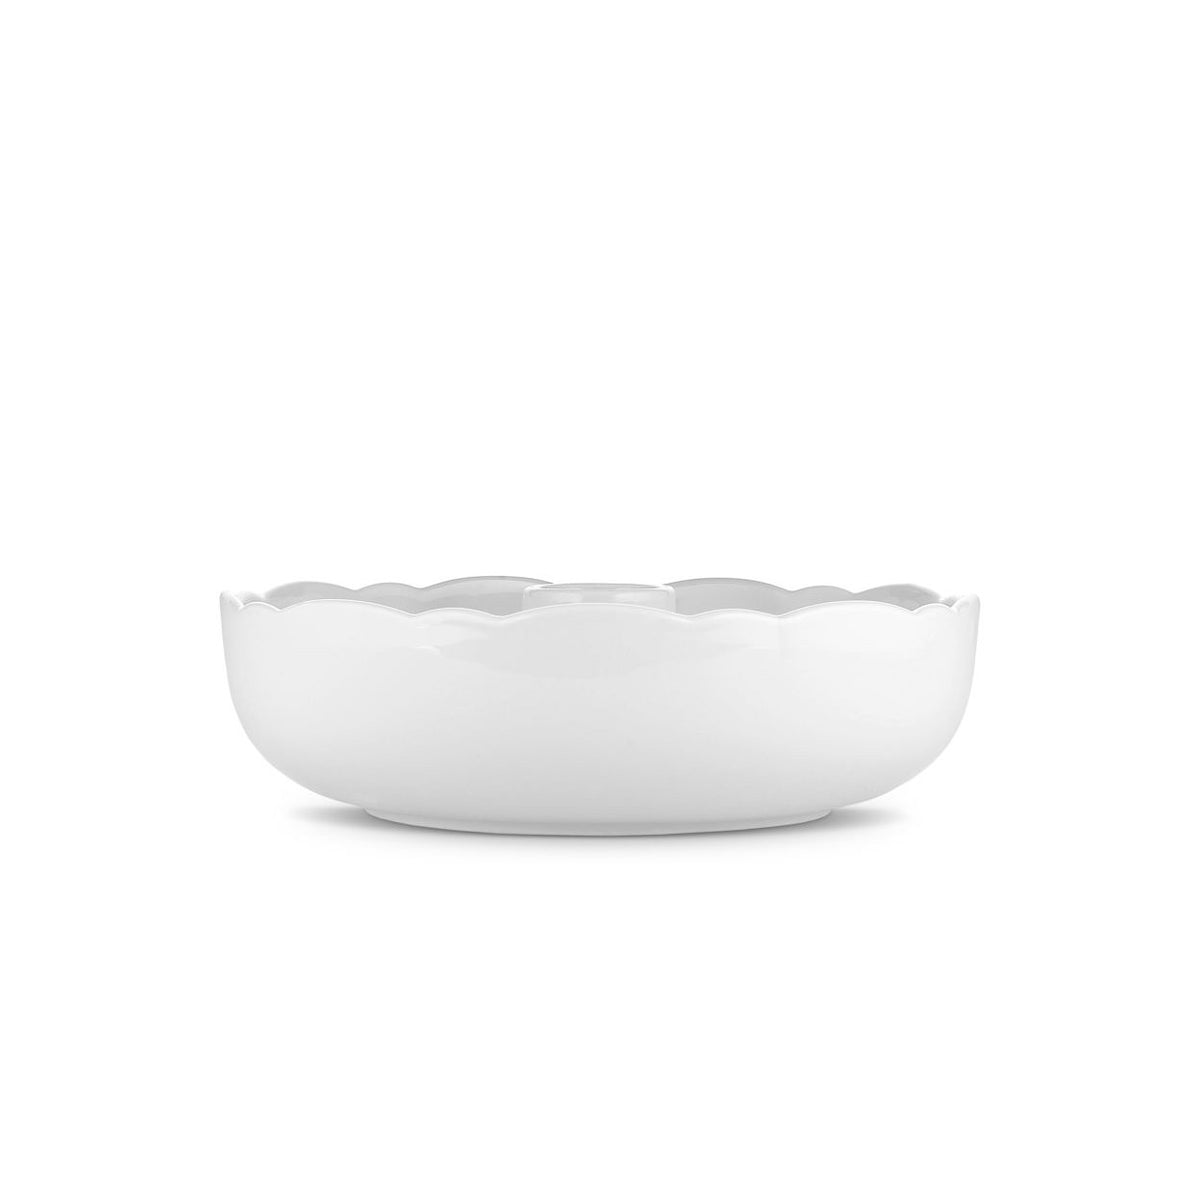 Dressed for x mas dried fruit bowl by alessi emmo home - Alessi fruit bowl ...